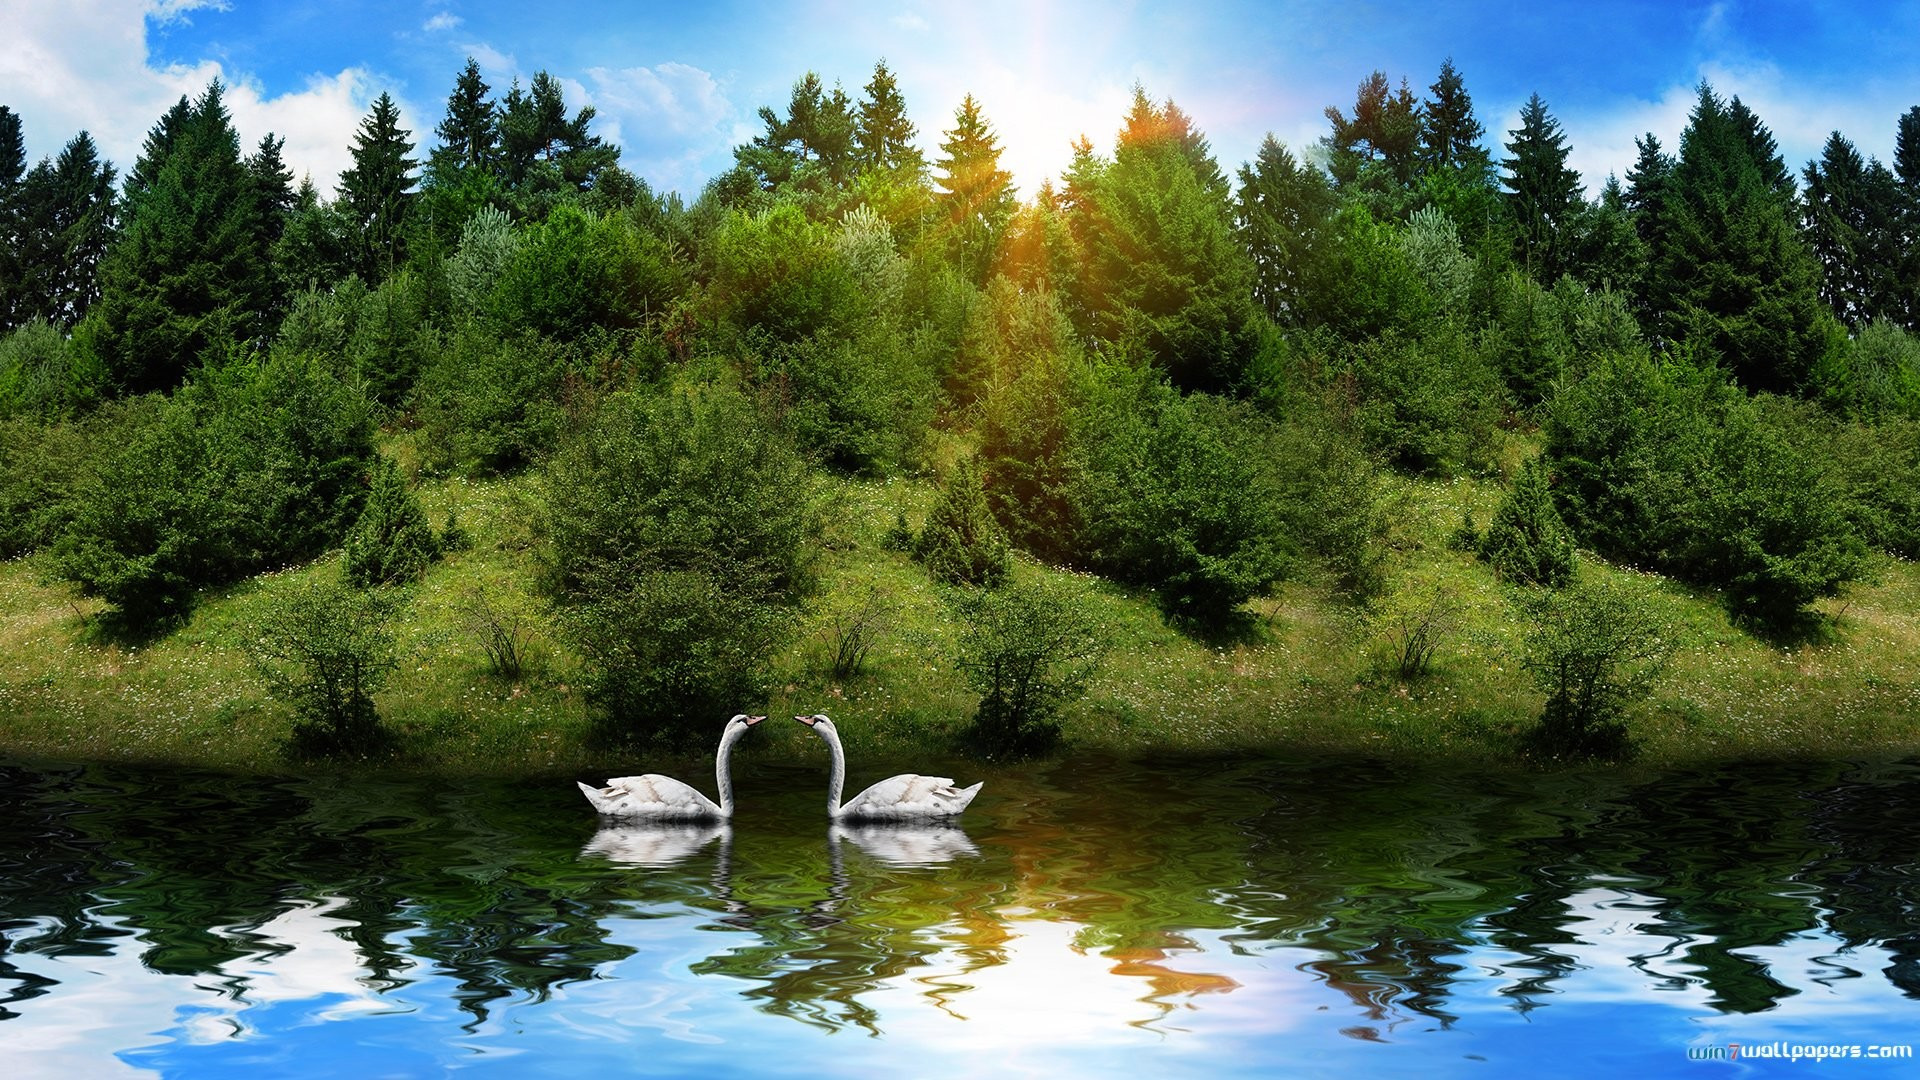 Nature wallpapers for desktop 60 background pictures - Background pictures of nature for desktop ...